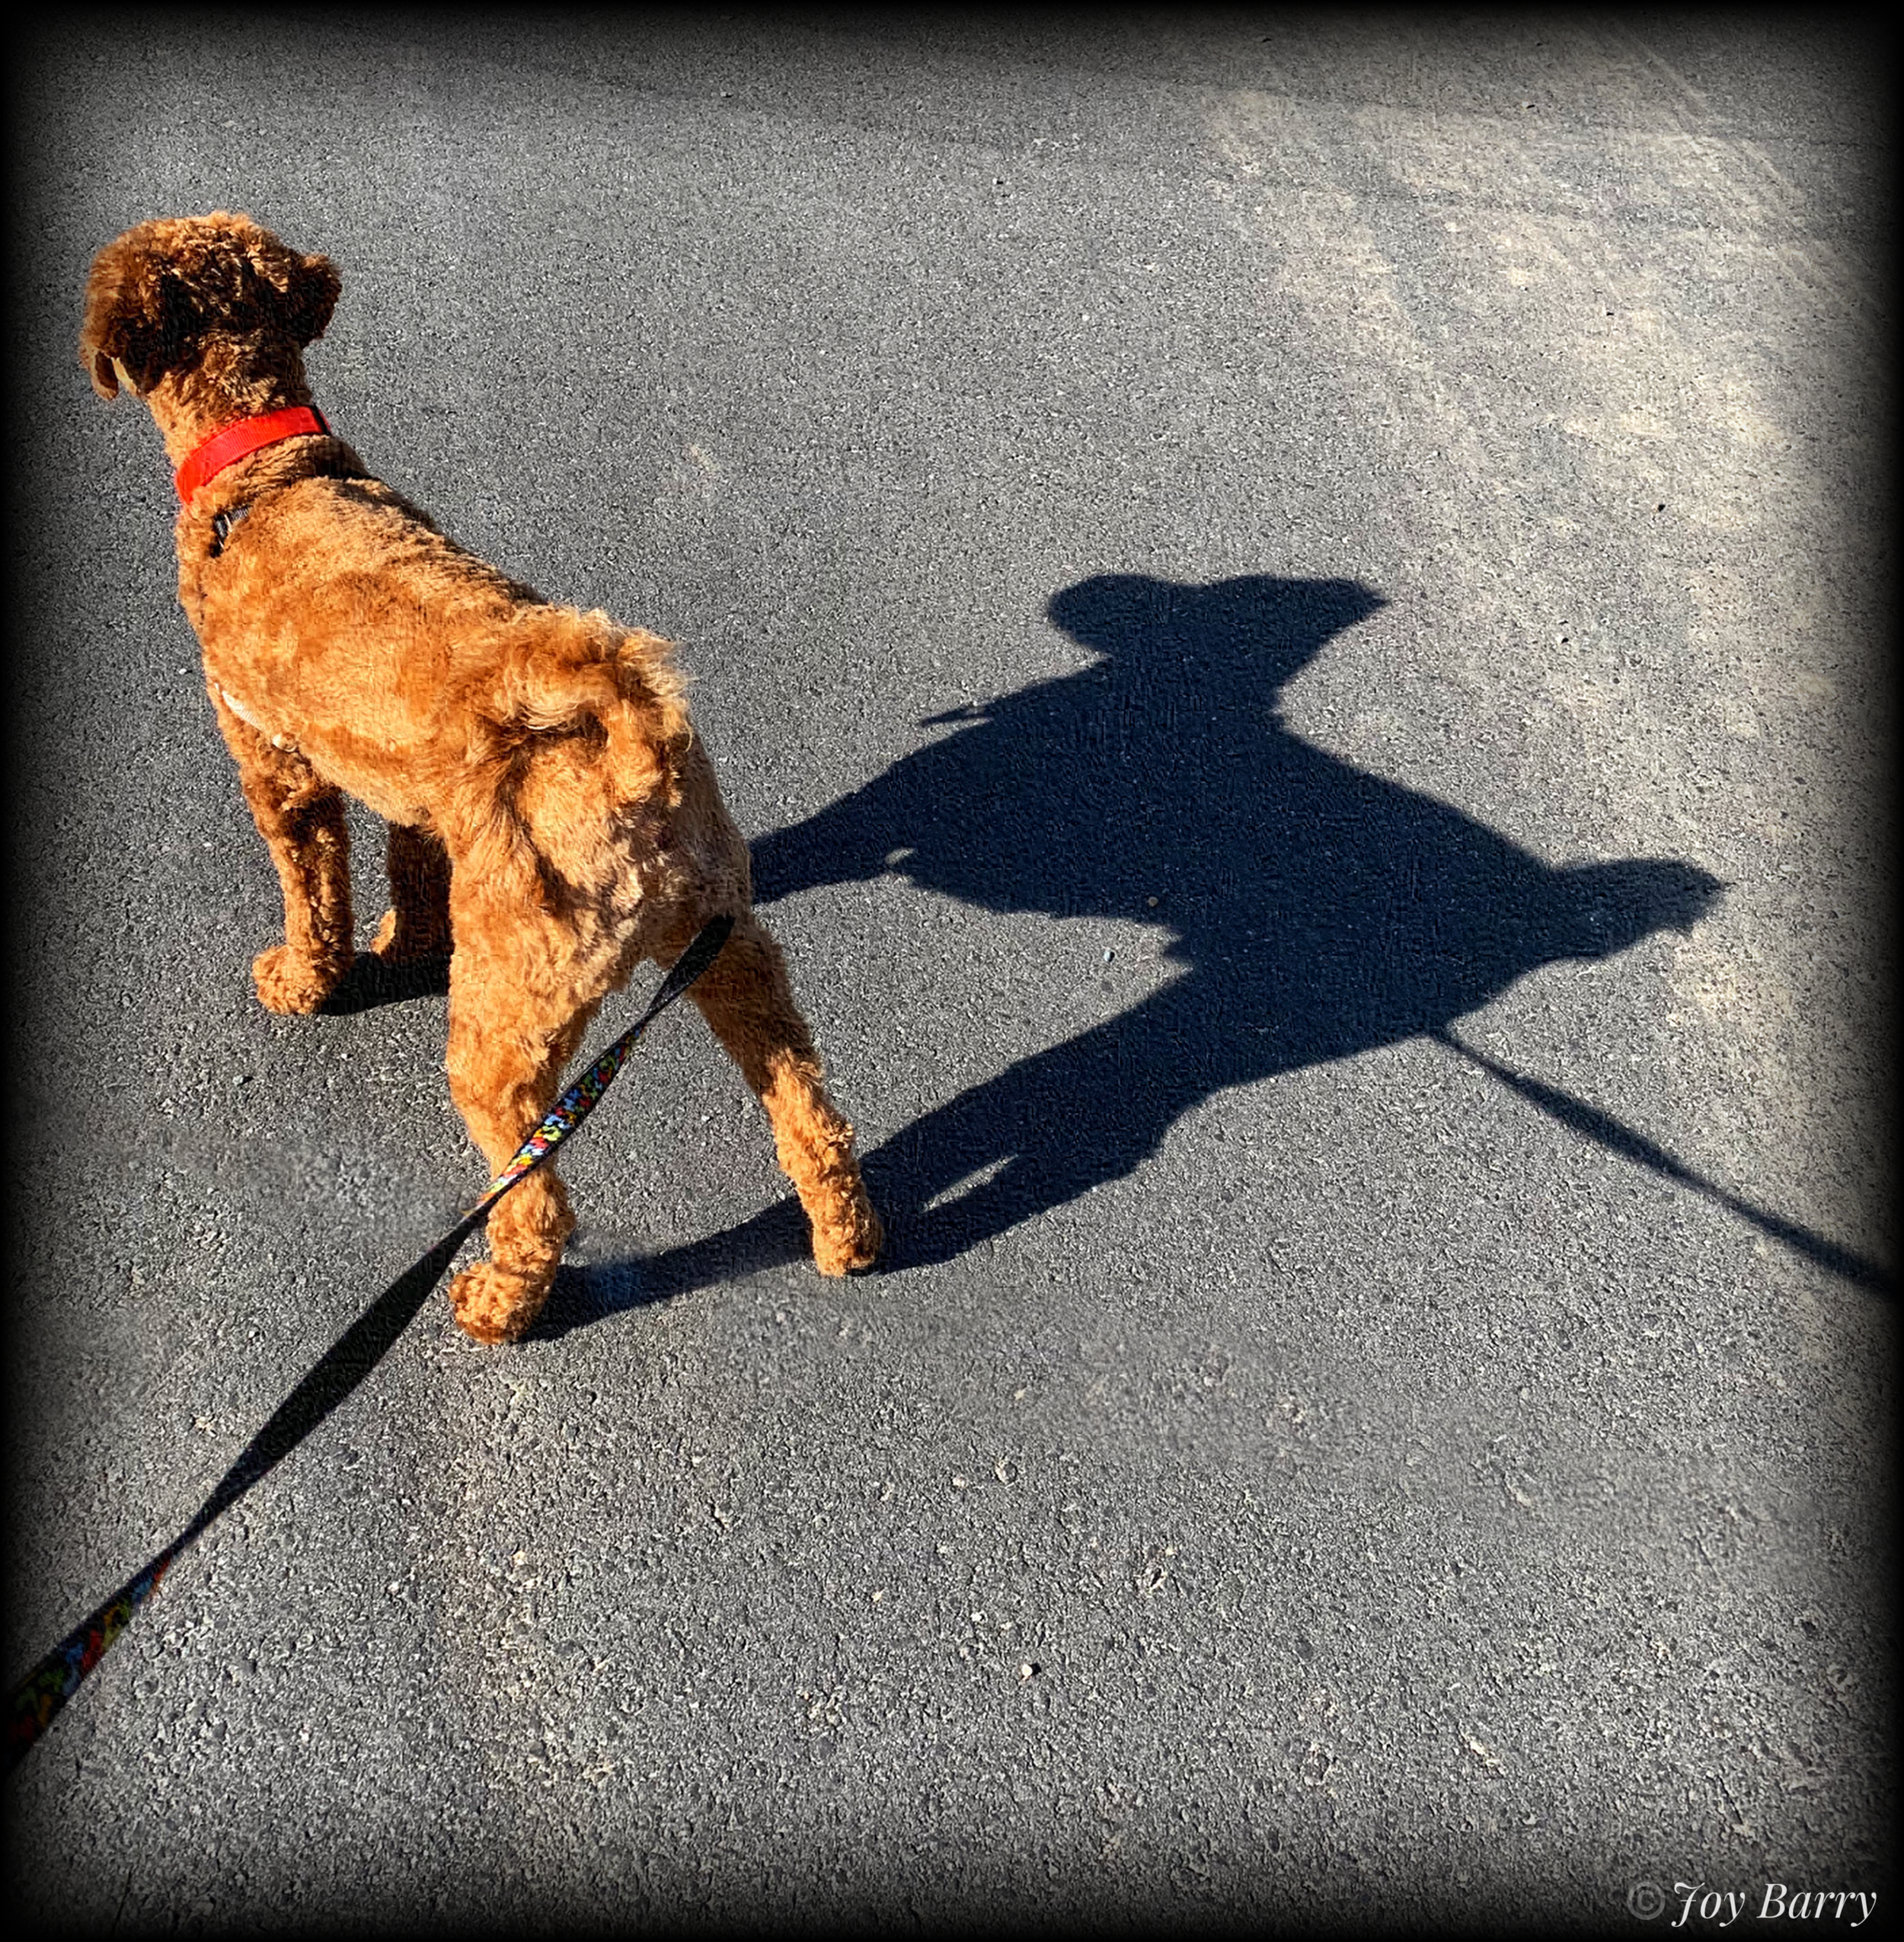 March 31, 2019 - KerrBee and his shadow…going for a walk!